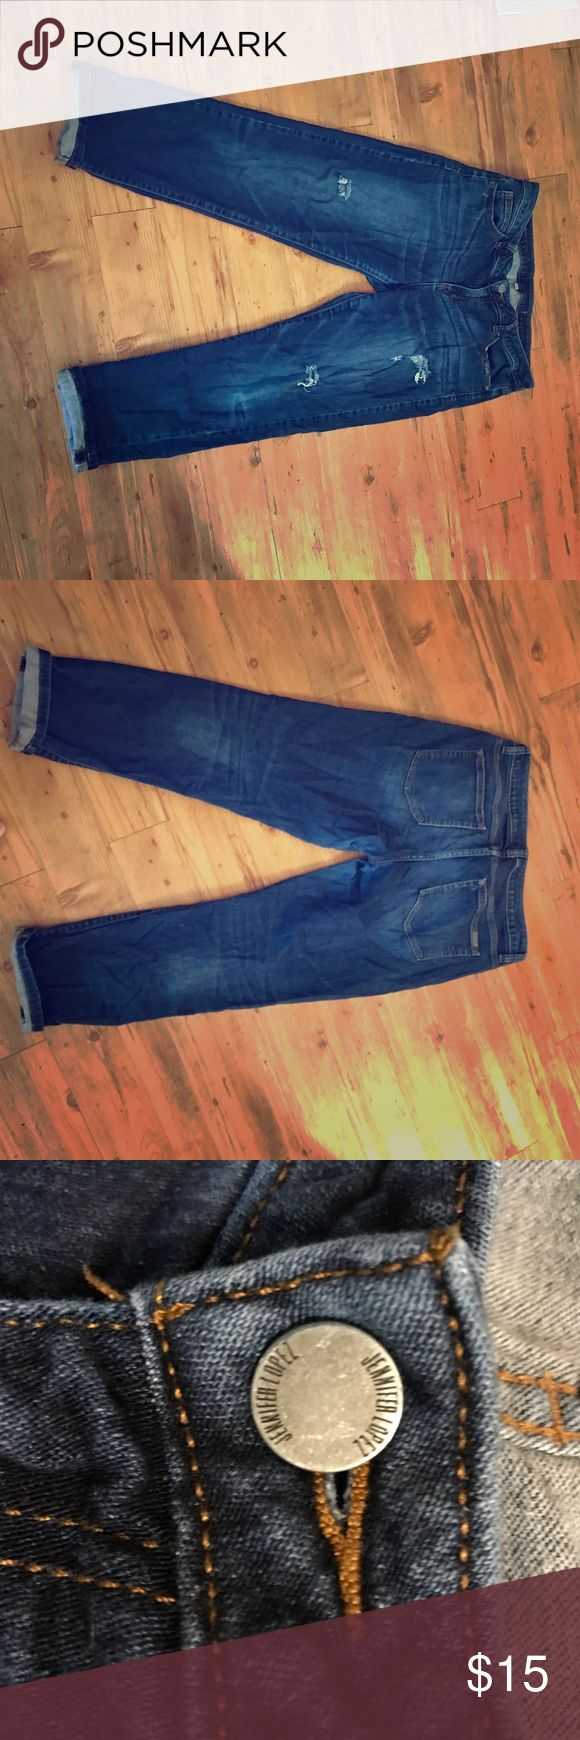 Jennifer Lopez Boyfriend Jeans GUC Size 8 GUC Jennifer Lopez Boyfriend Jeans Size 8. Distressed with holes. Some Piling on inner thighs (pictured) but no holes or other damage. 💸 Love the item, but not the price?💸 Make me an offer using the offer button!💸 Jennifer Lopez Jeans Boyfriend